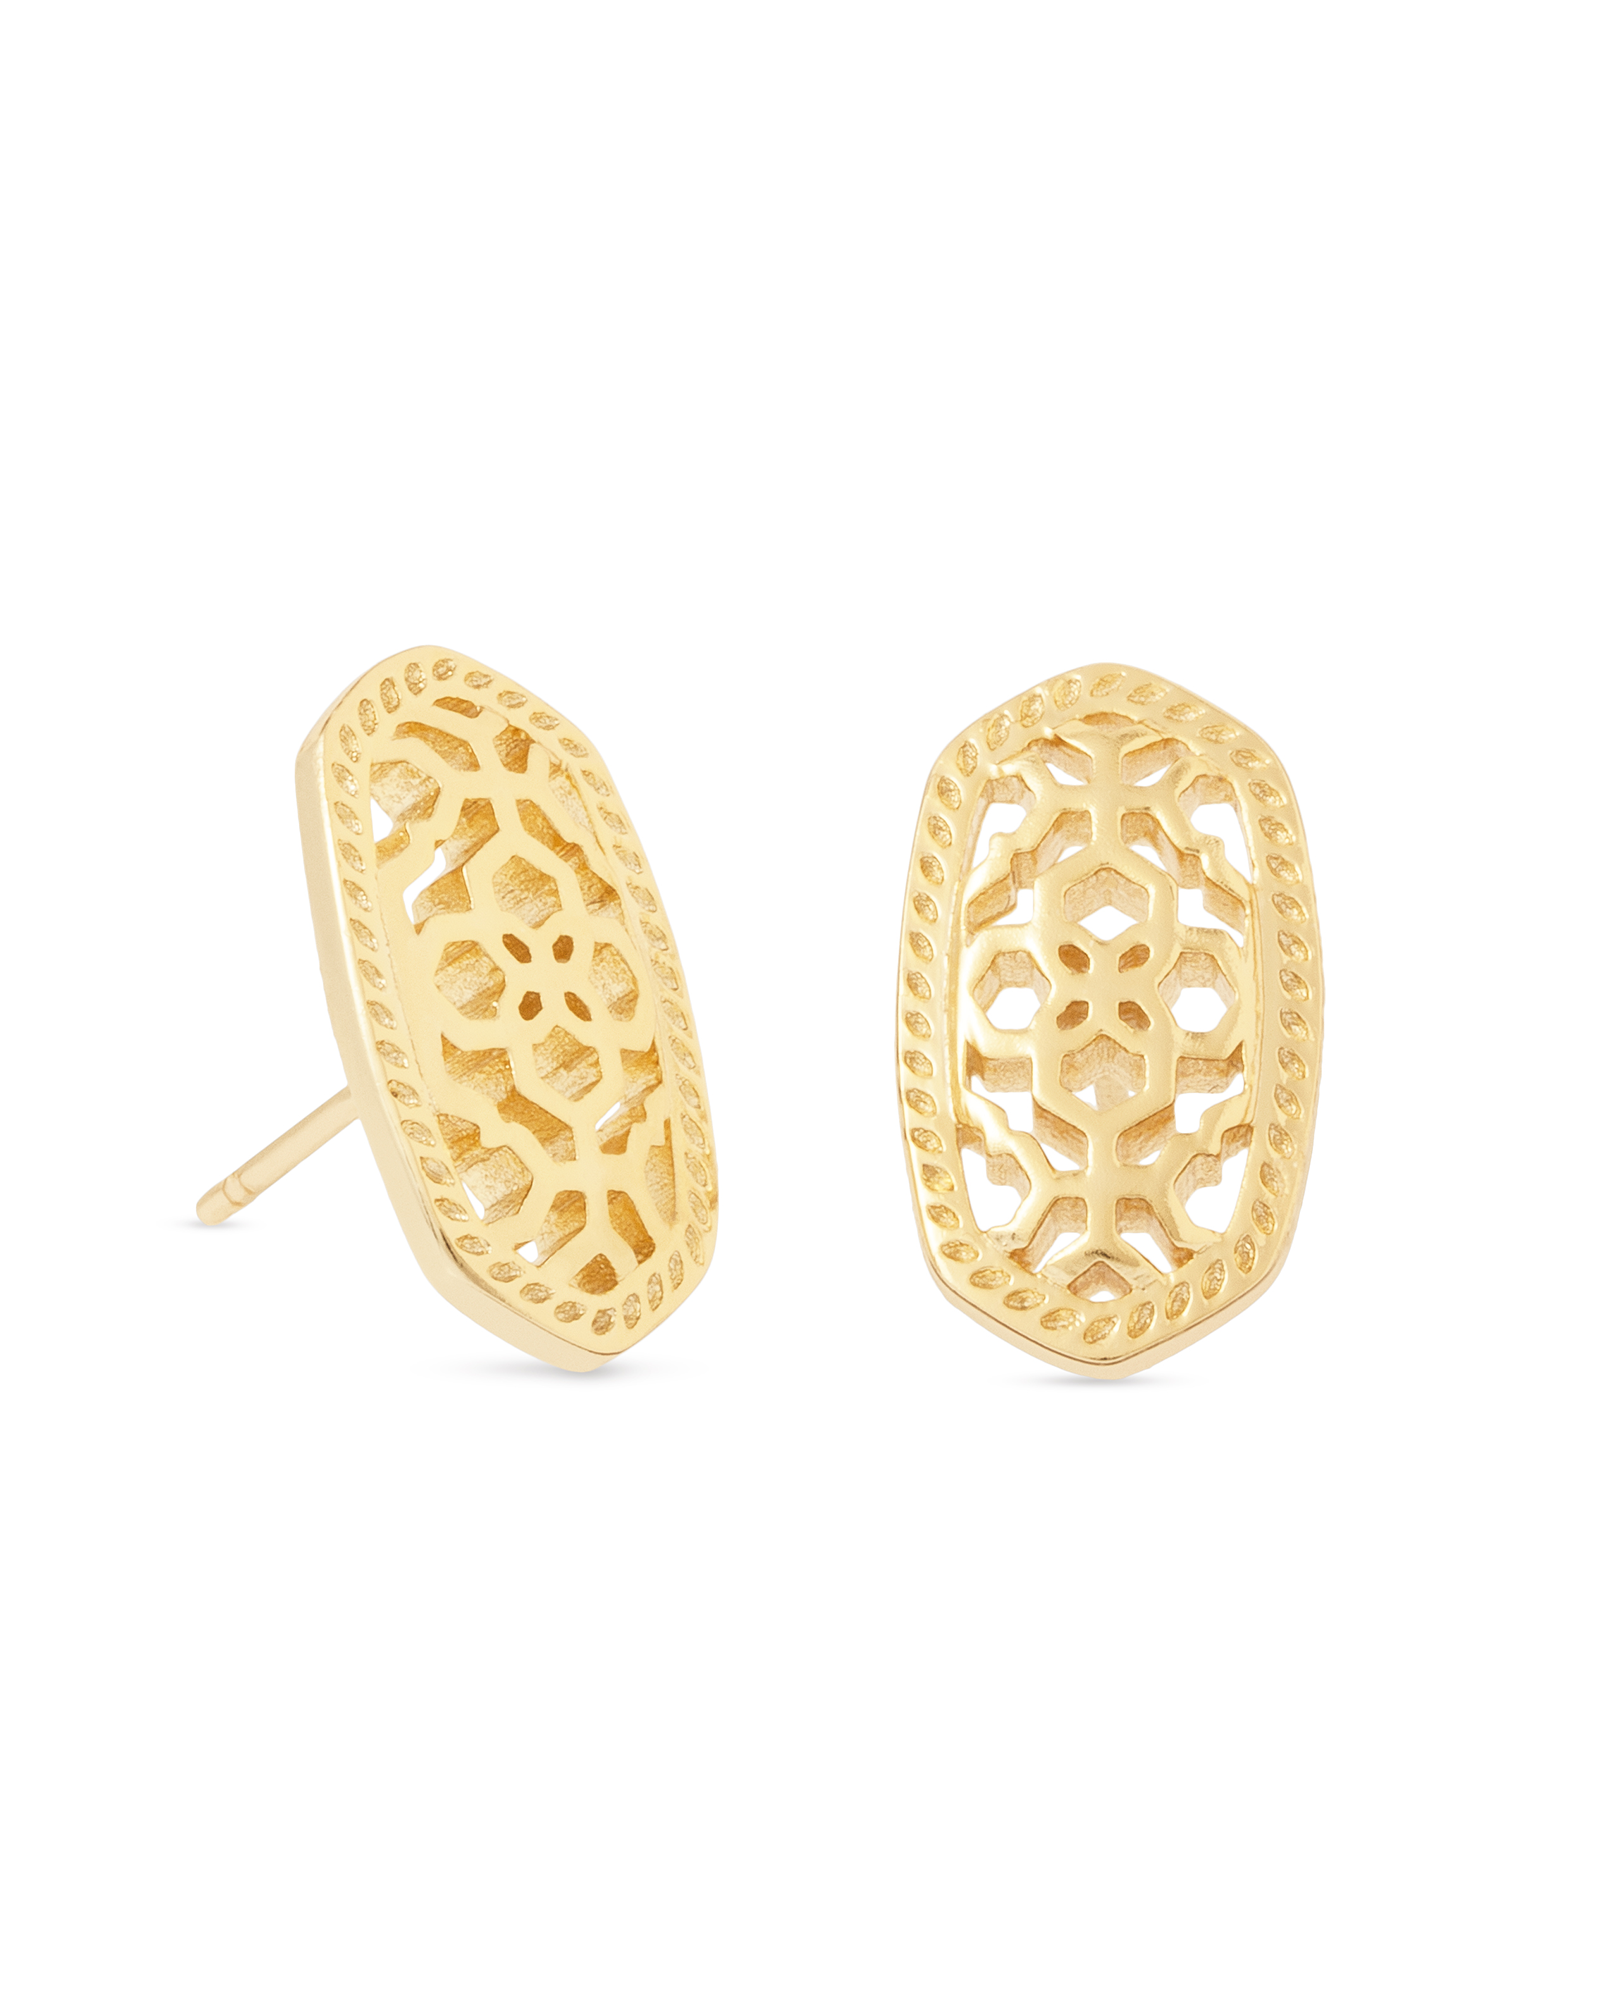 Ellie/Bryant Stud Earrings in Gold Filigree | finishing touches ...